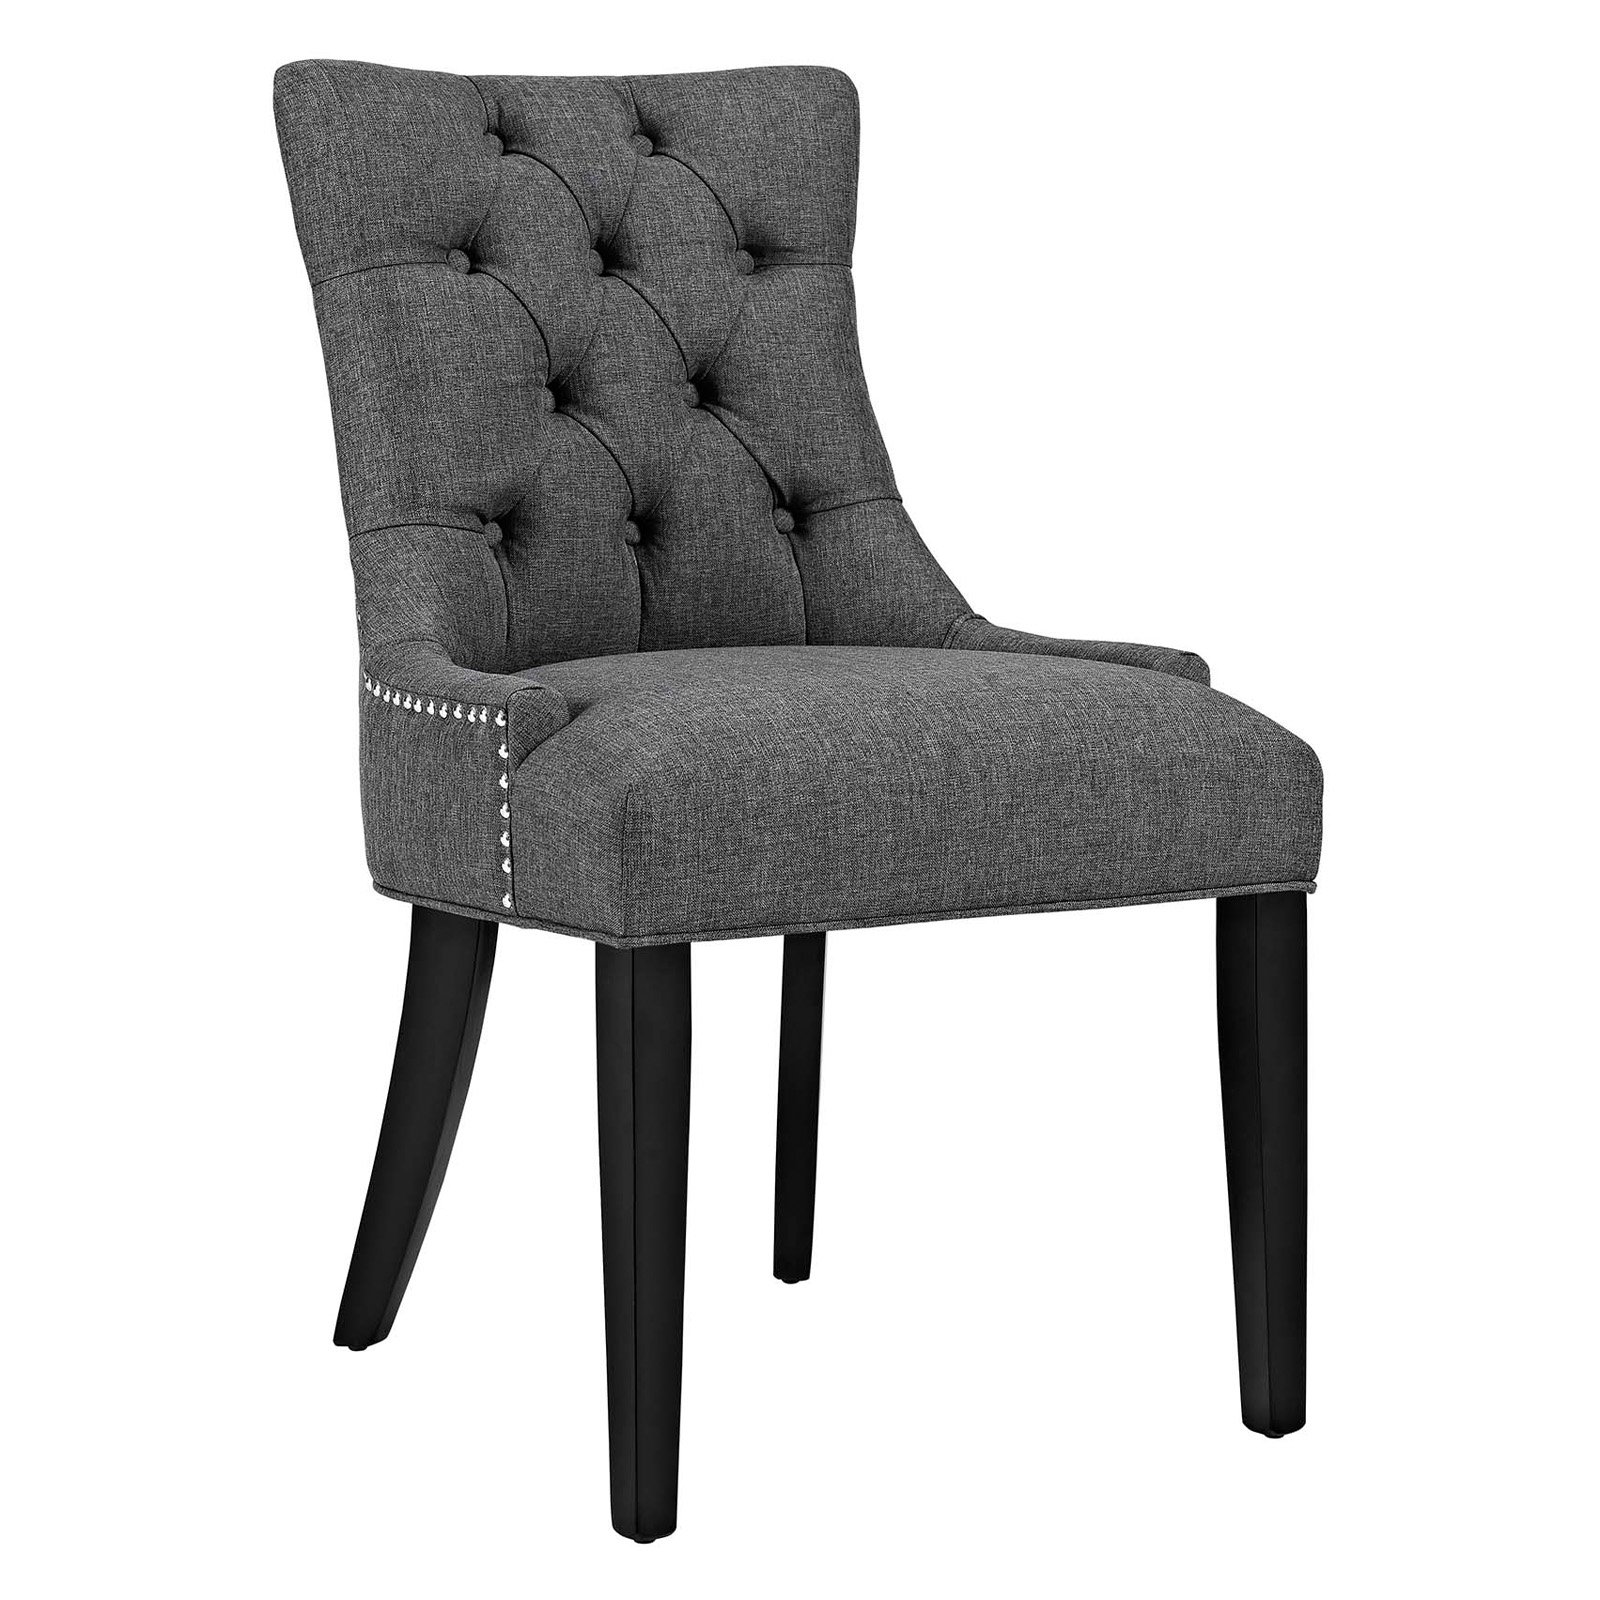 Modway Regent Upholstered Dining Chair, Multiple Colors